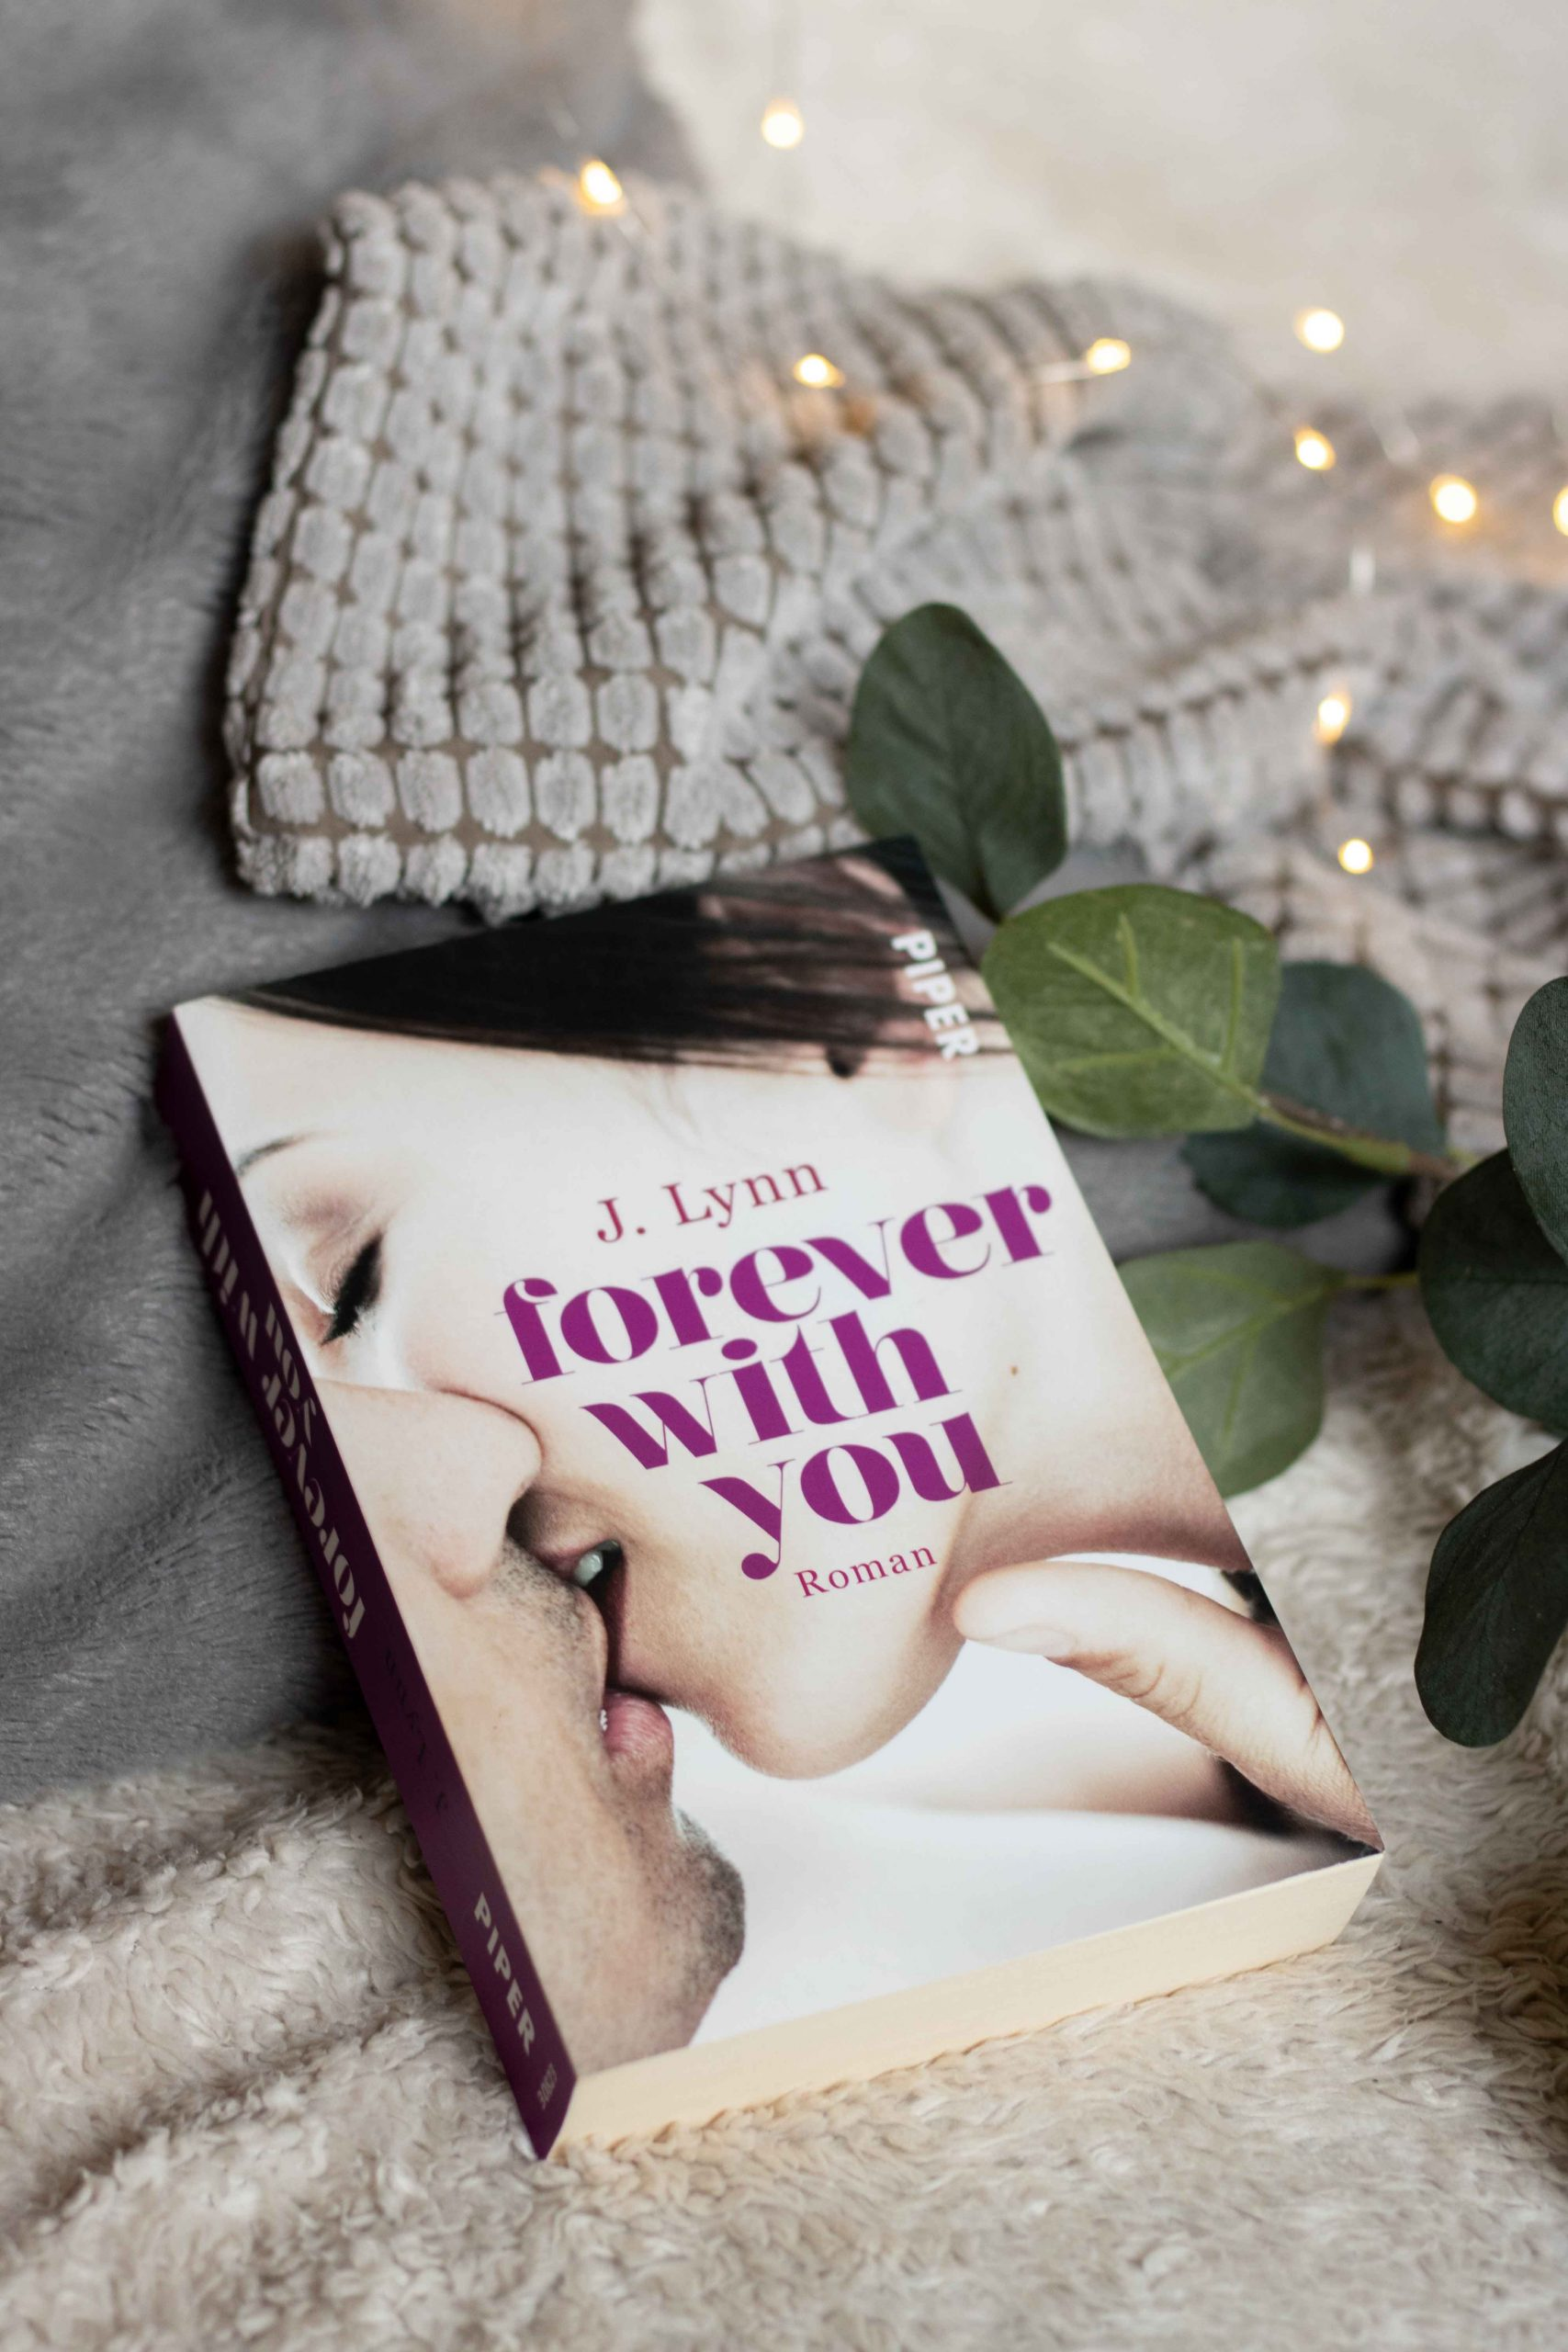 Forever with you | J. Lynn